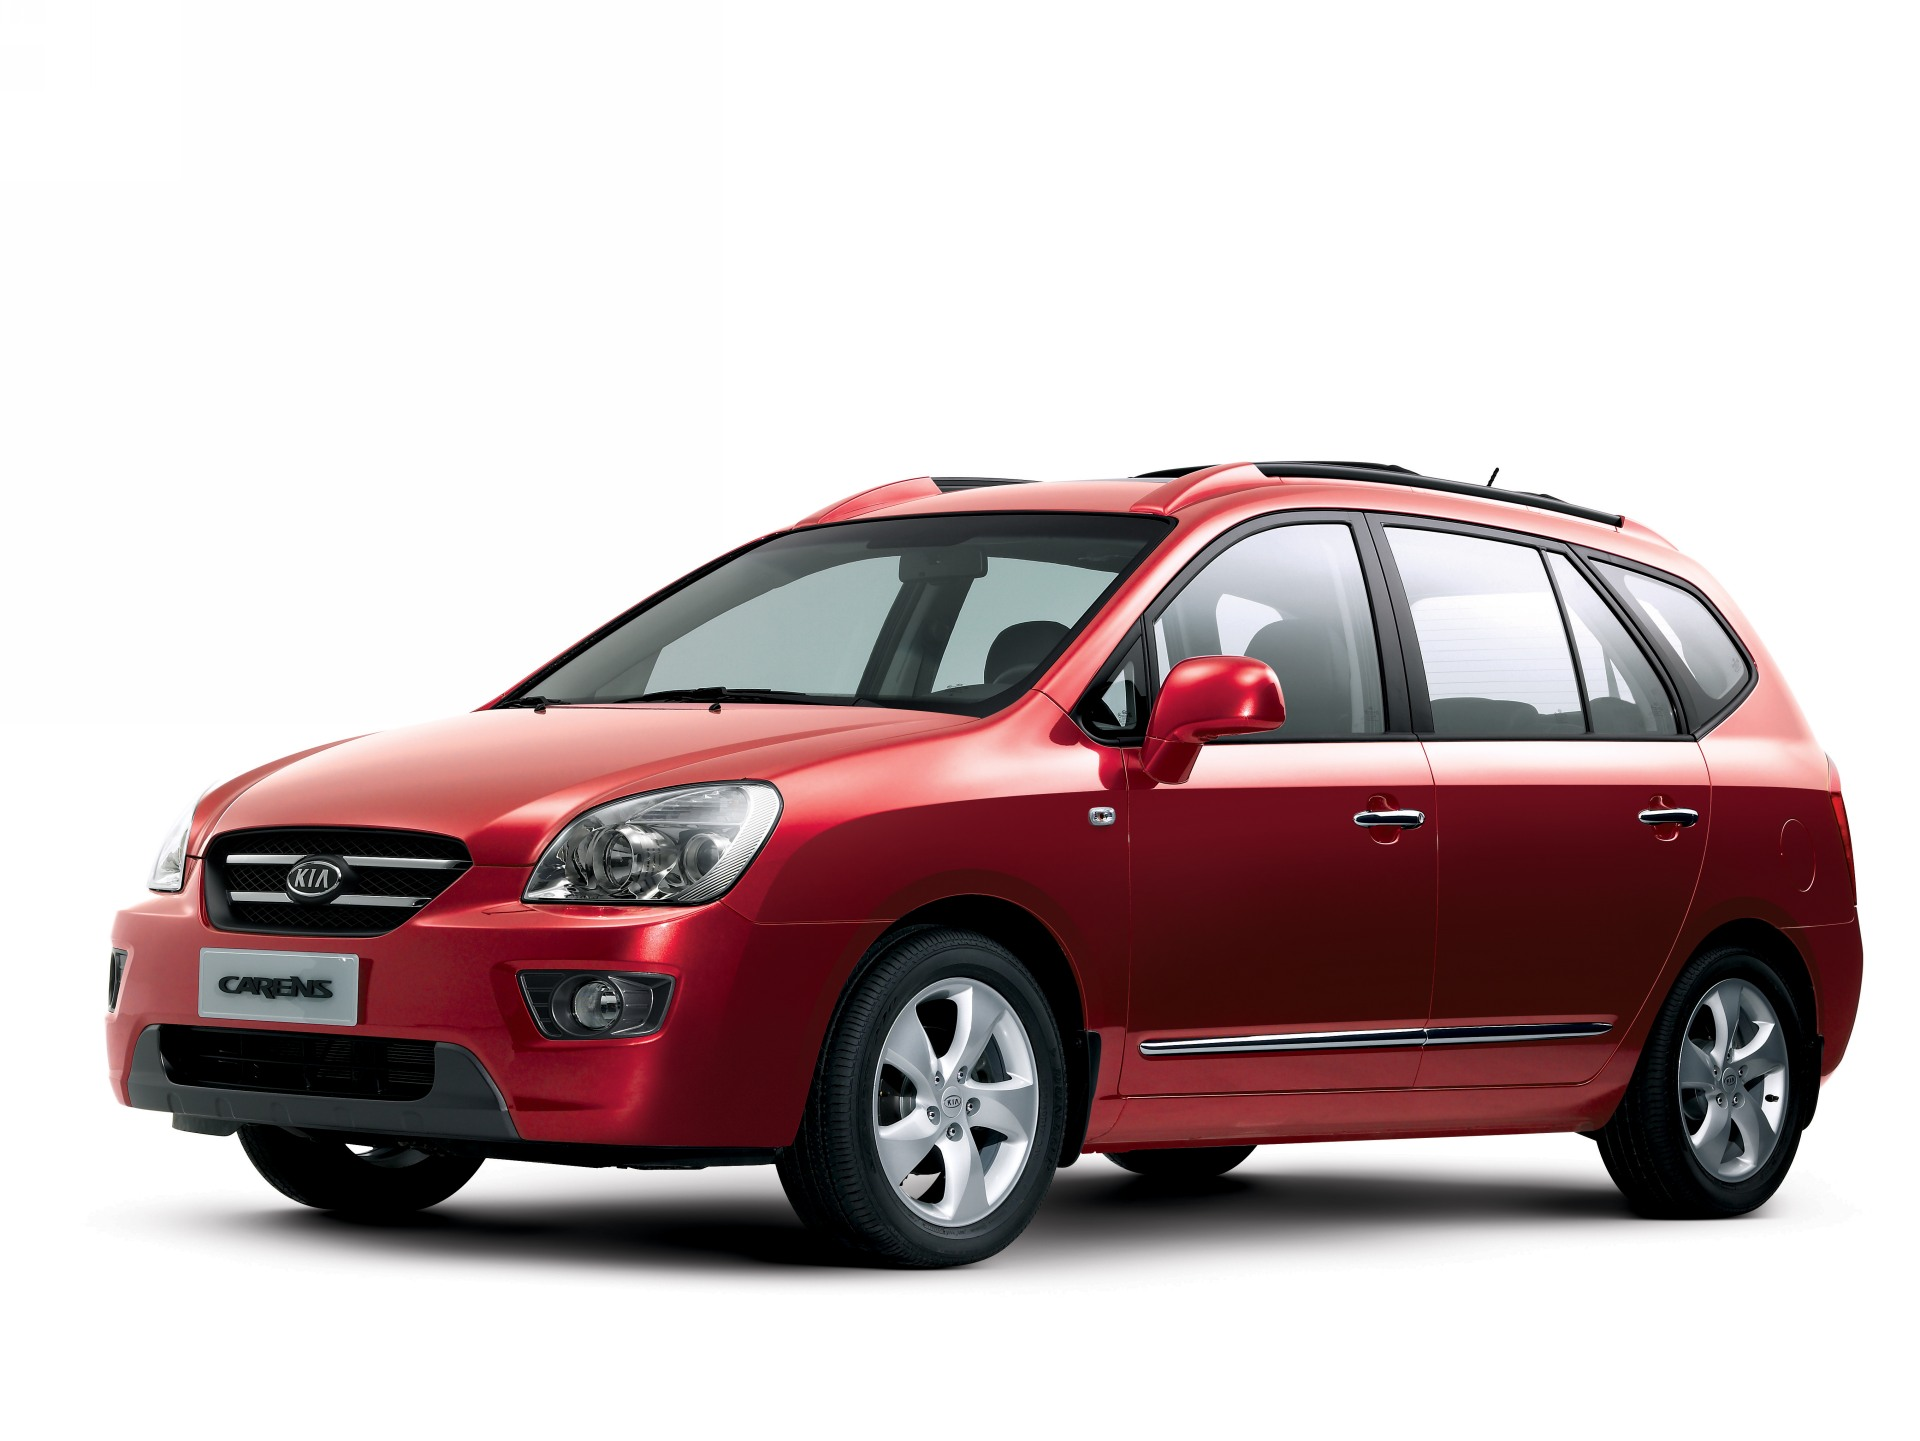 2007 Kia Carens Technical Specifications And Data Engine